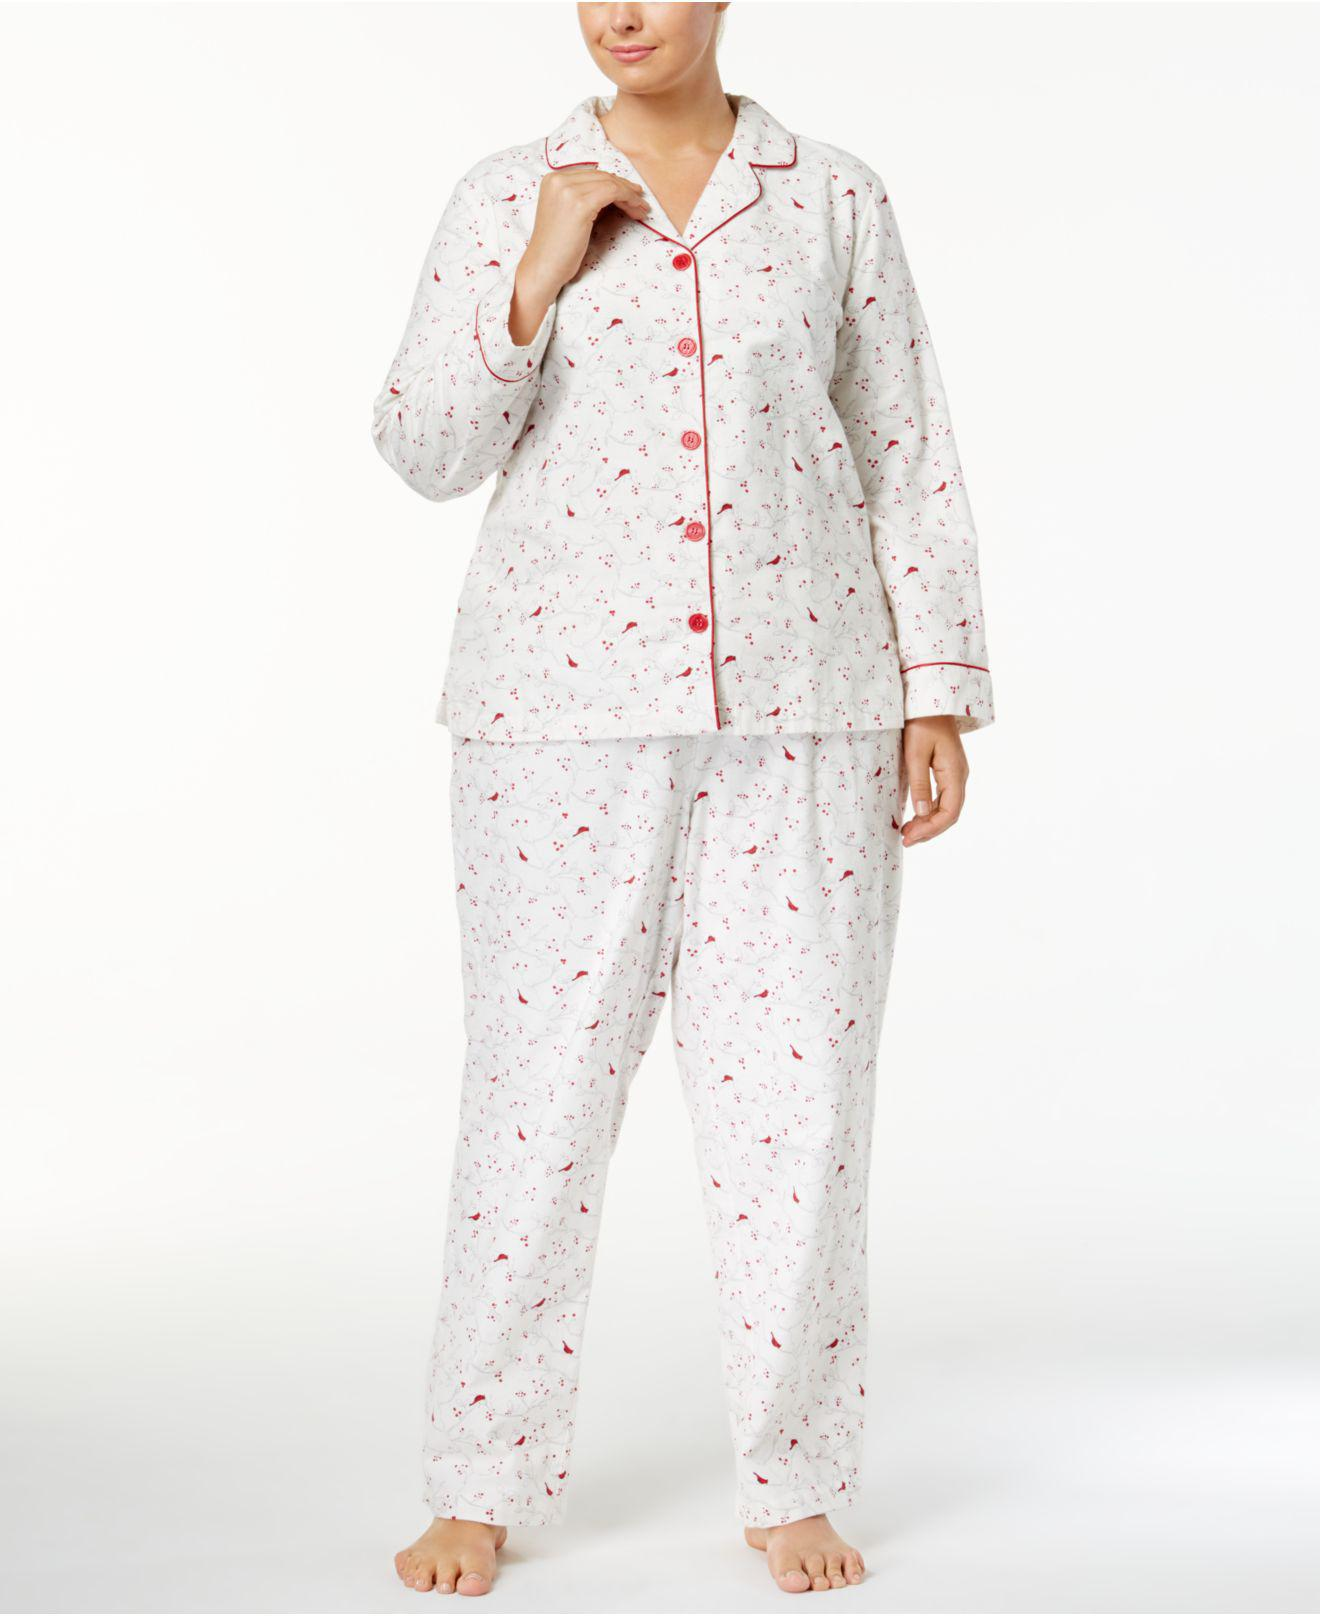 9668c11e9db8 Lyst - Charter Club Plus Size Printed Flannel Pajama Set in White